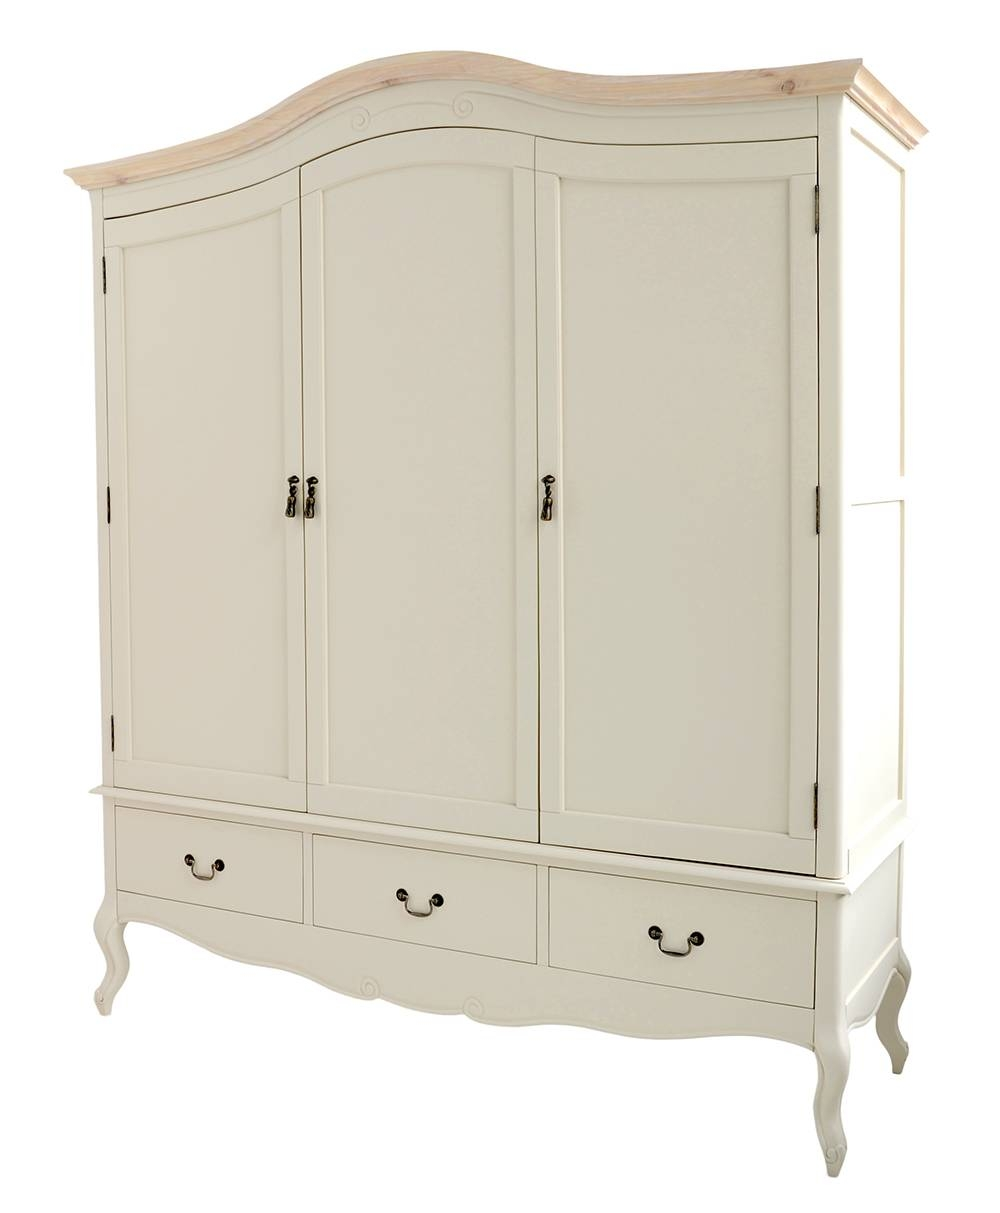 Shabby Chic Champagne Furniture, Cream Chest Of Drawers, Dressing with regard to Wardrobe With Shelves And Drawers (Image 19 of 30)